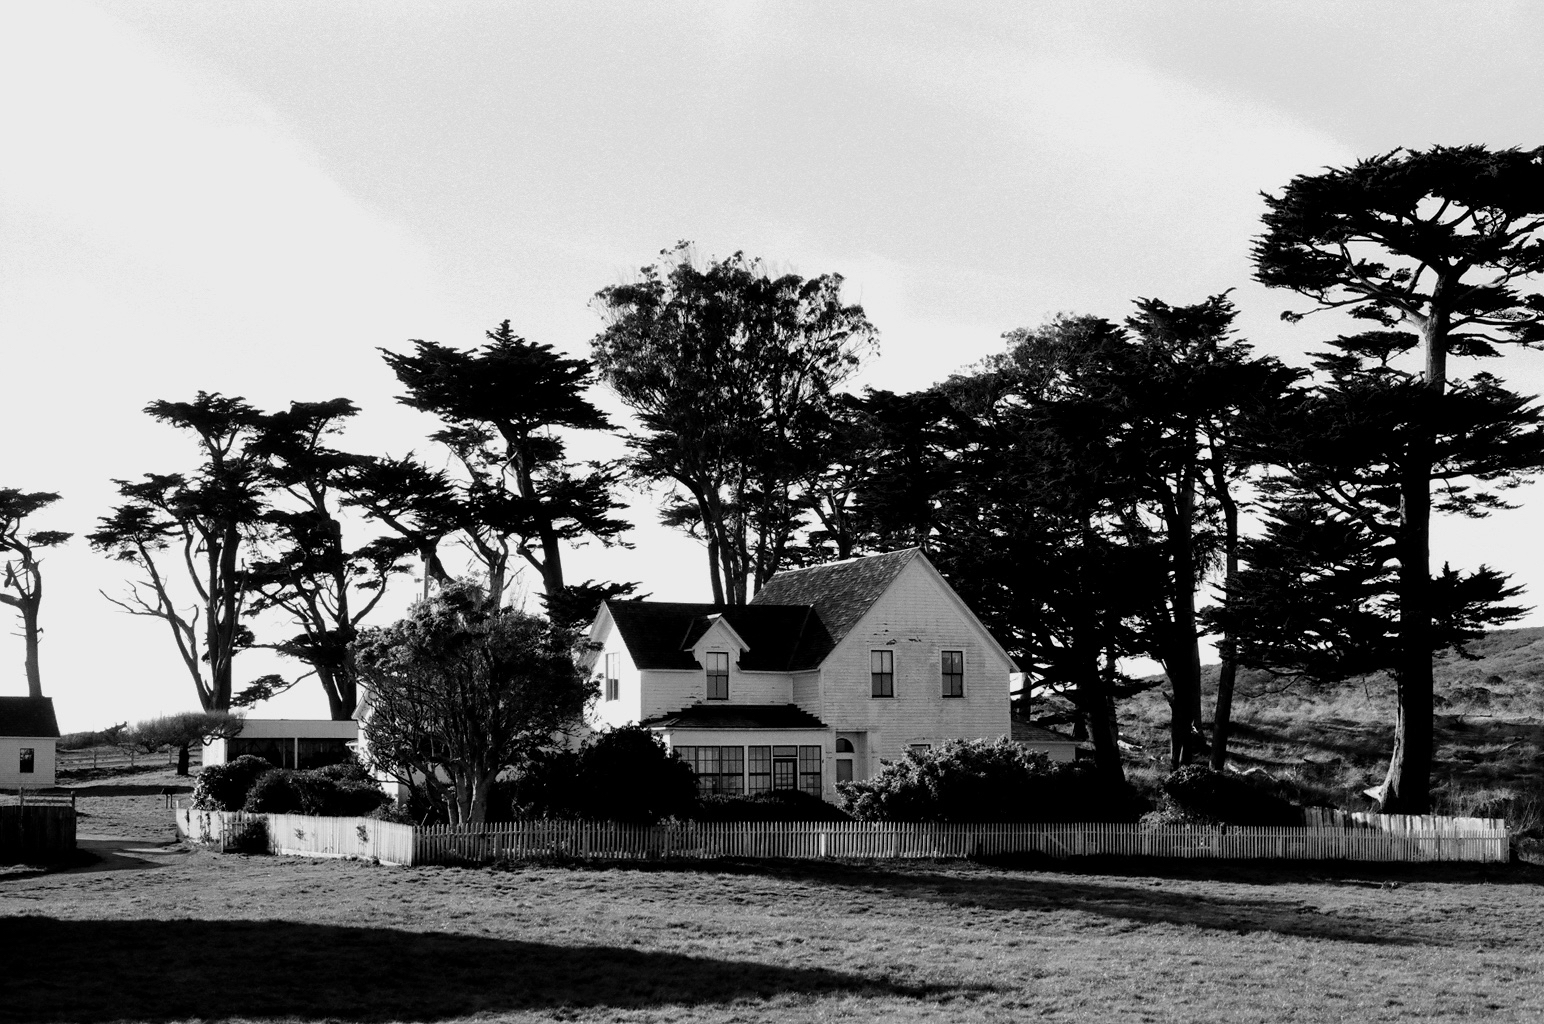 The ranch house at Pierce Point.